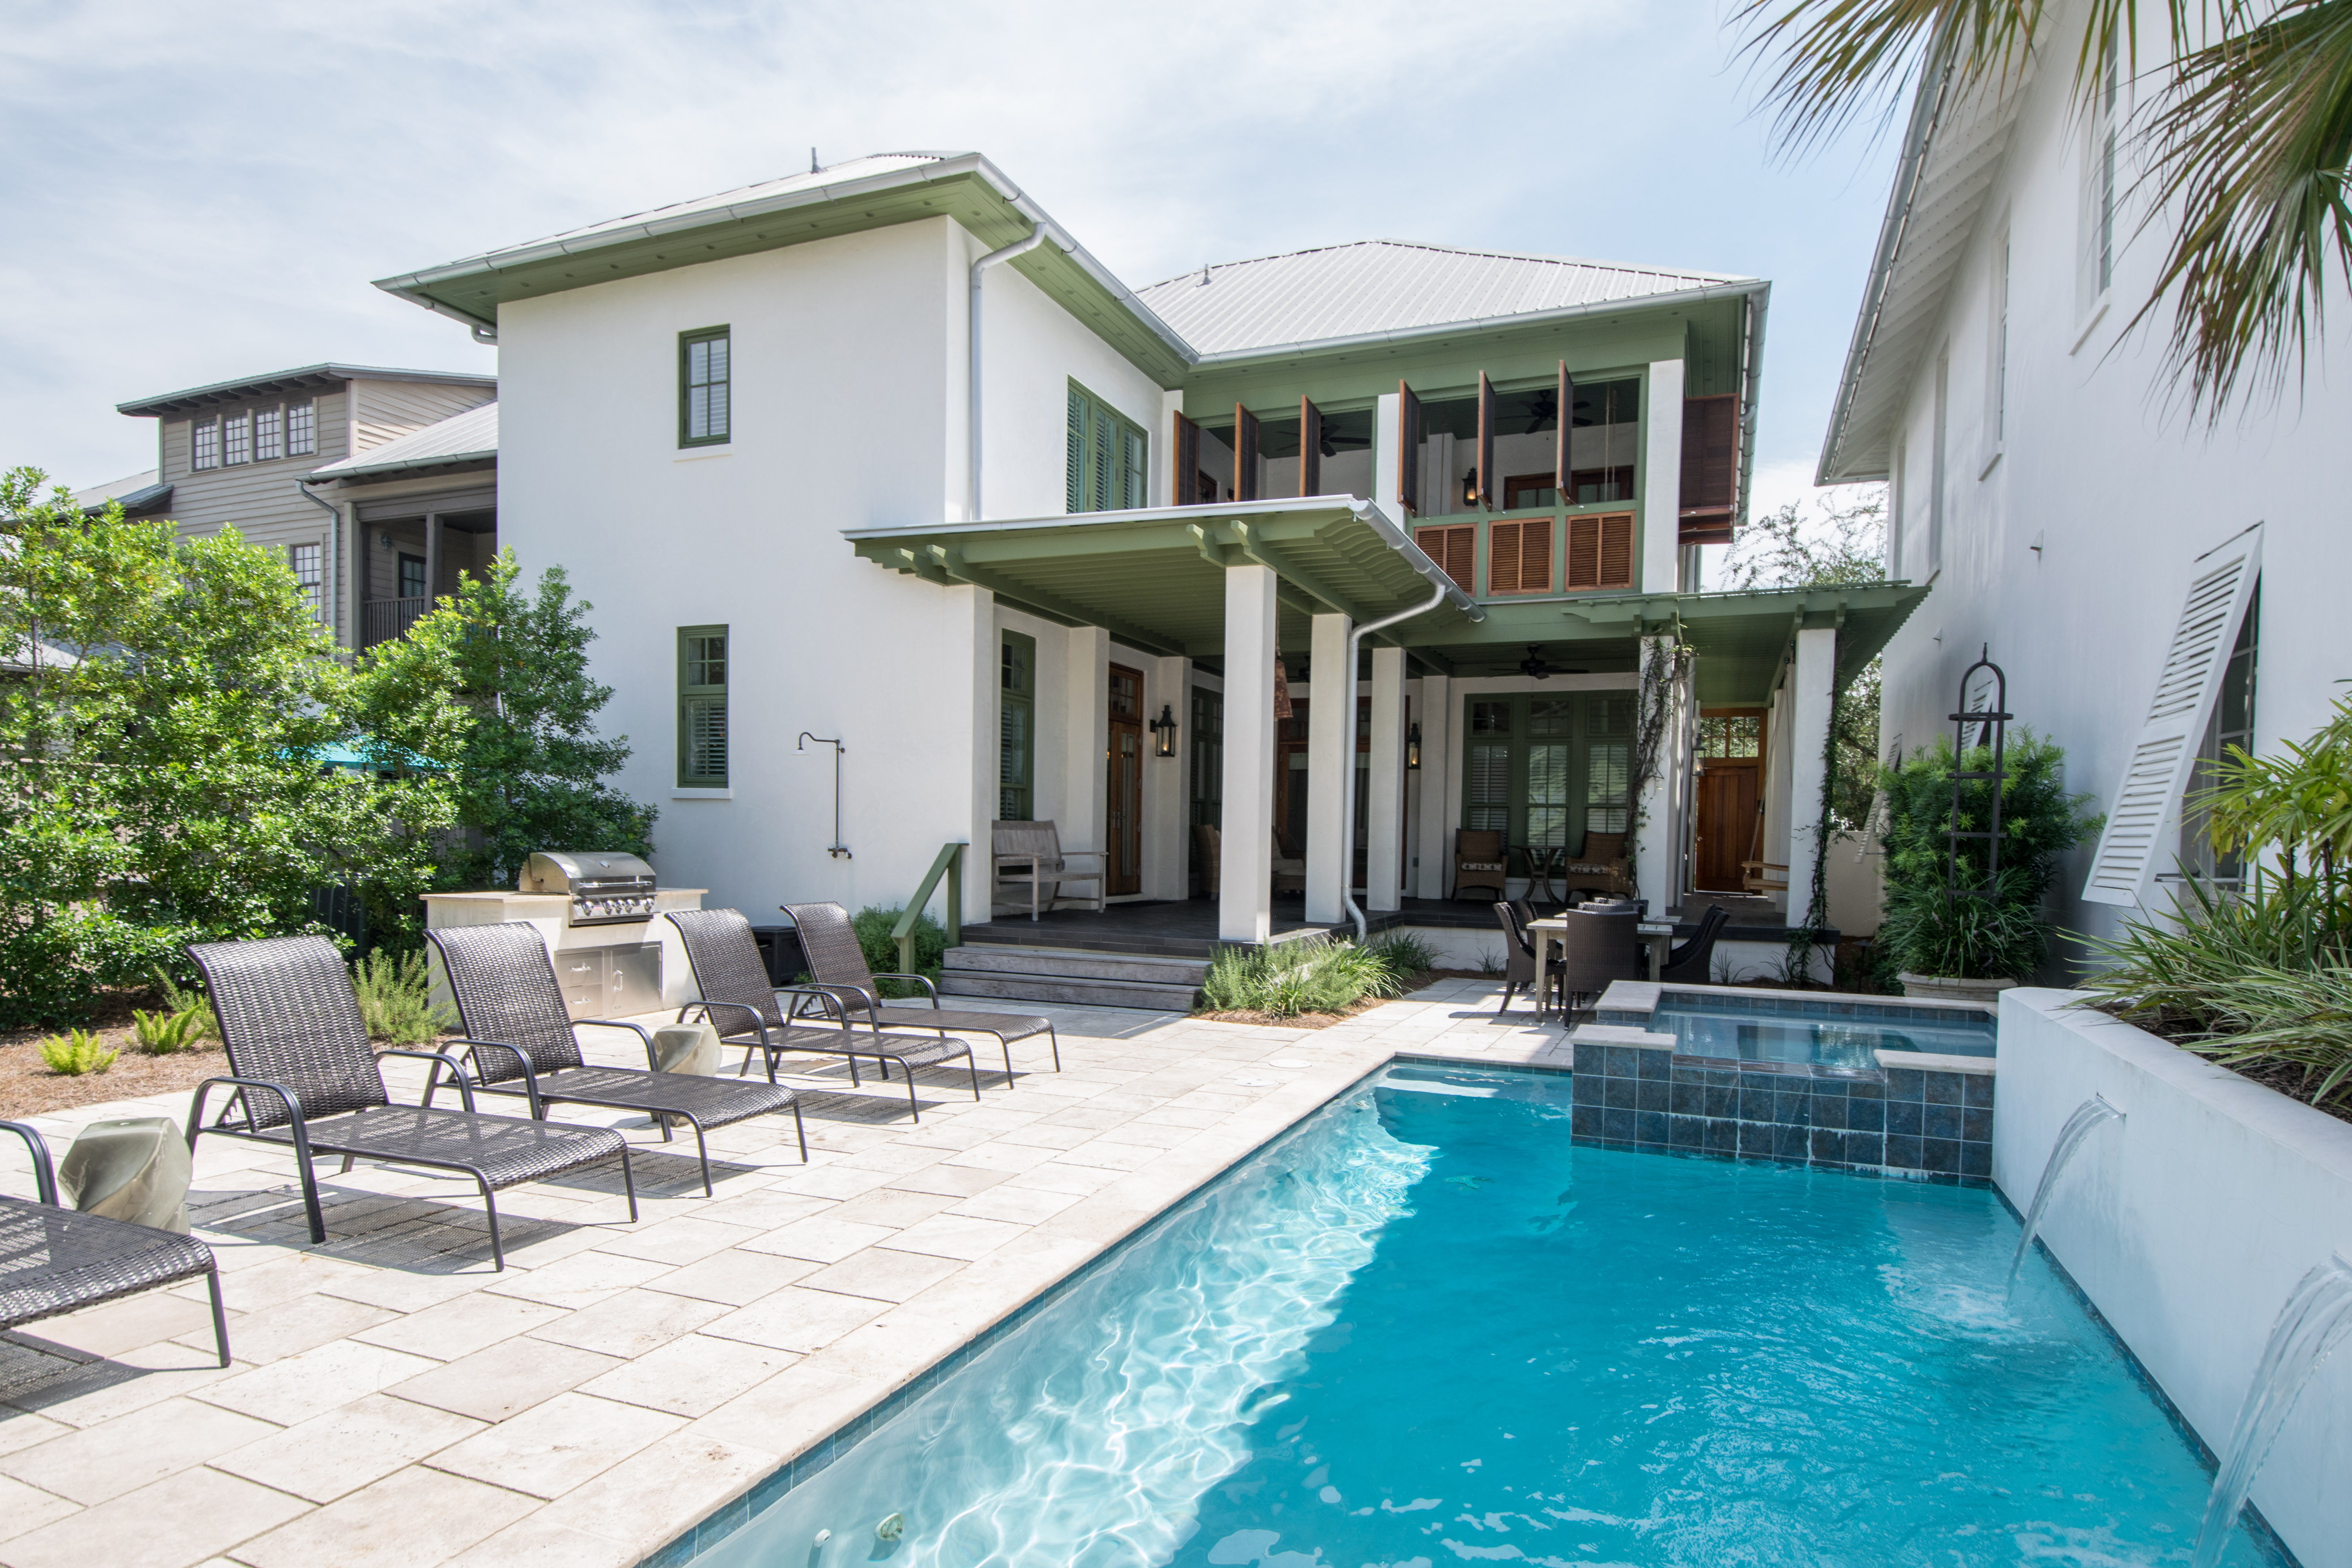 BEACH MUSIC COTTAGE with FABULOUS PRIVATE POOL and SPA .  4 Bedrooms and 4.5 Baths.  Sleeps 10.